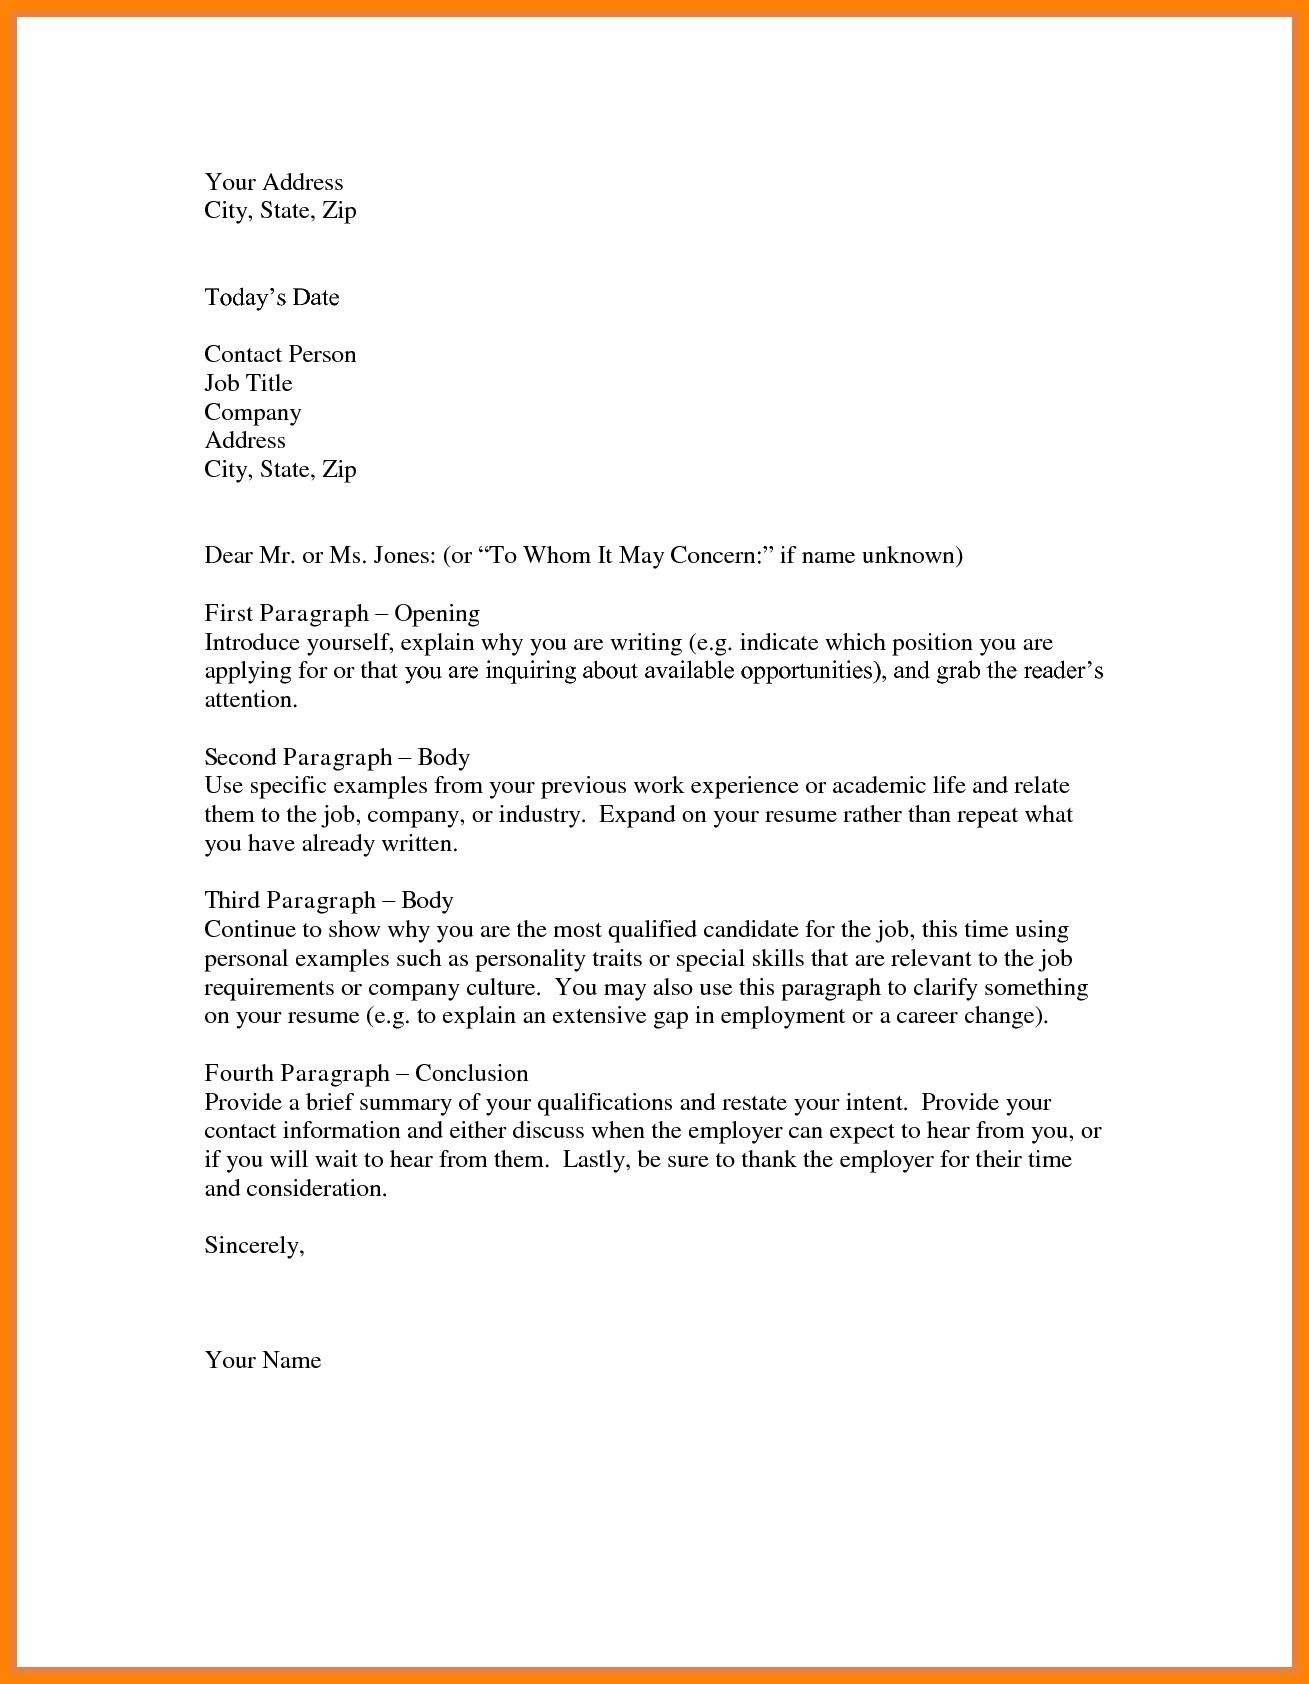 Free Letter Of Intent for A Job Template - Letter Intent Job Template New Letter Intent for Employment